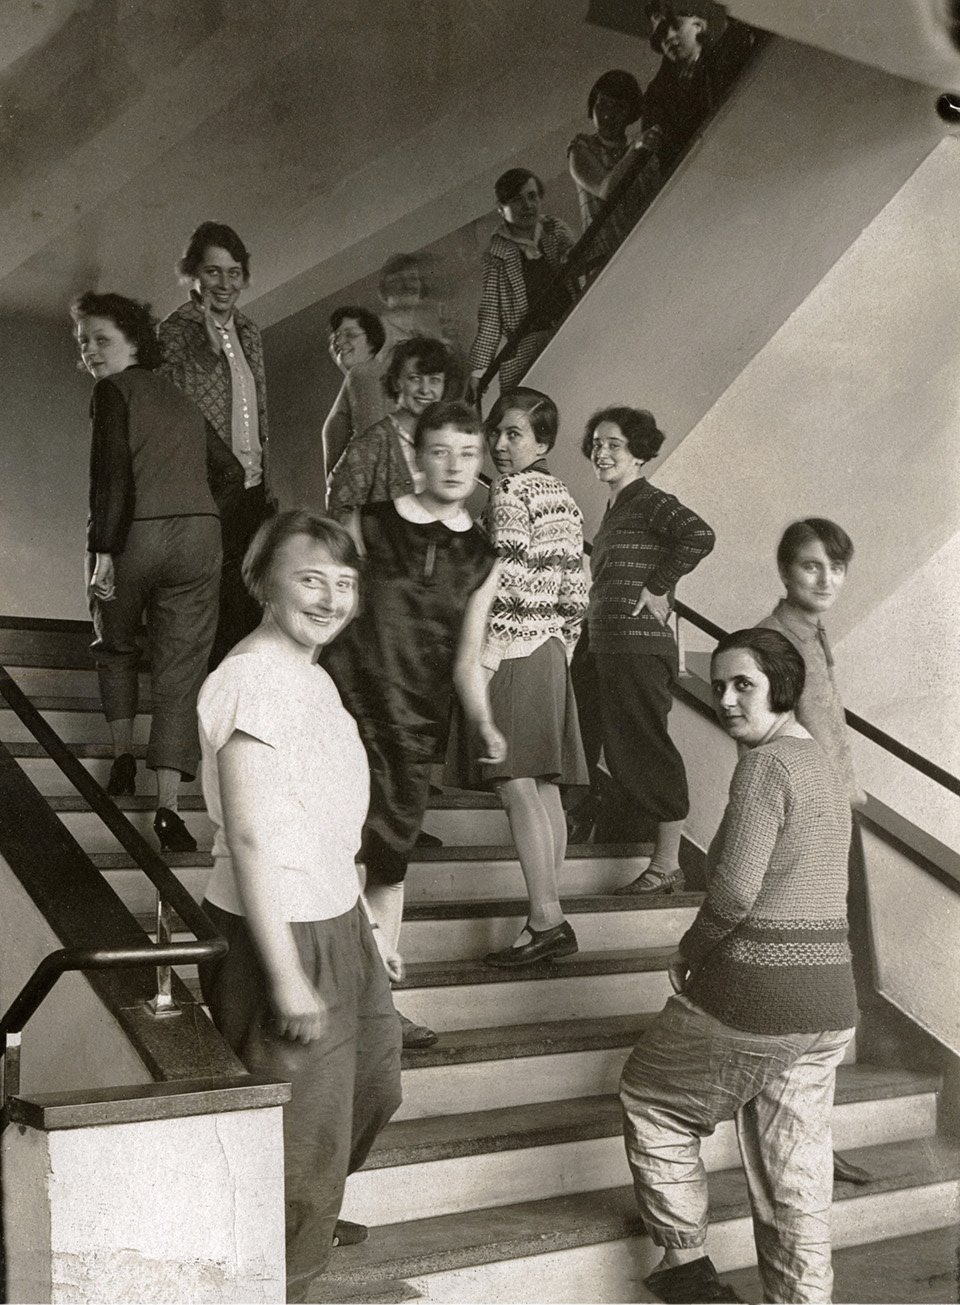 A group of weaving students on the Bauhaus stairs in Dessau, c. 1927